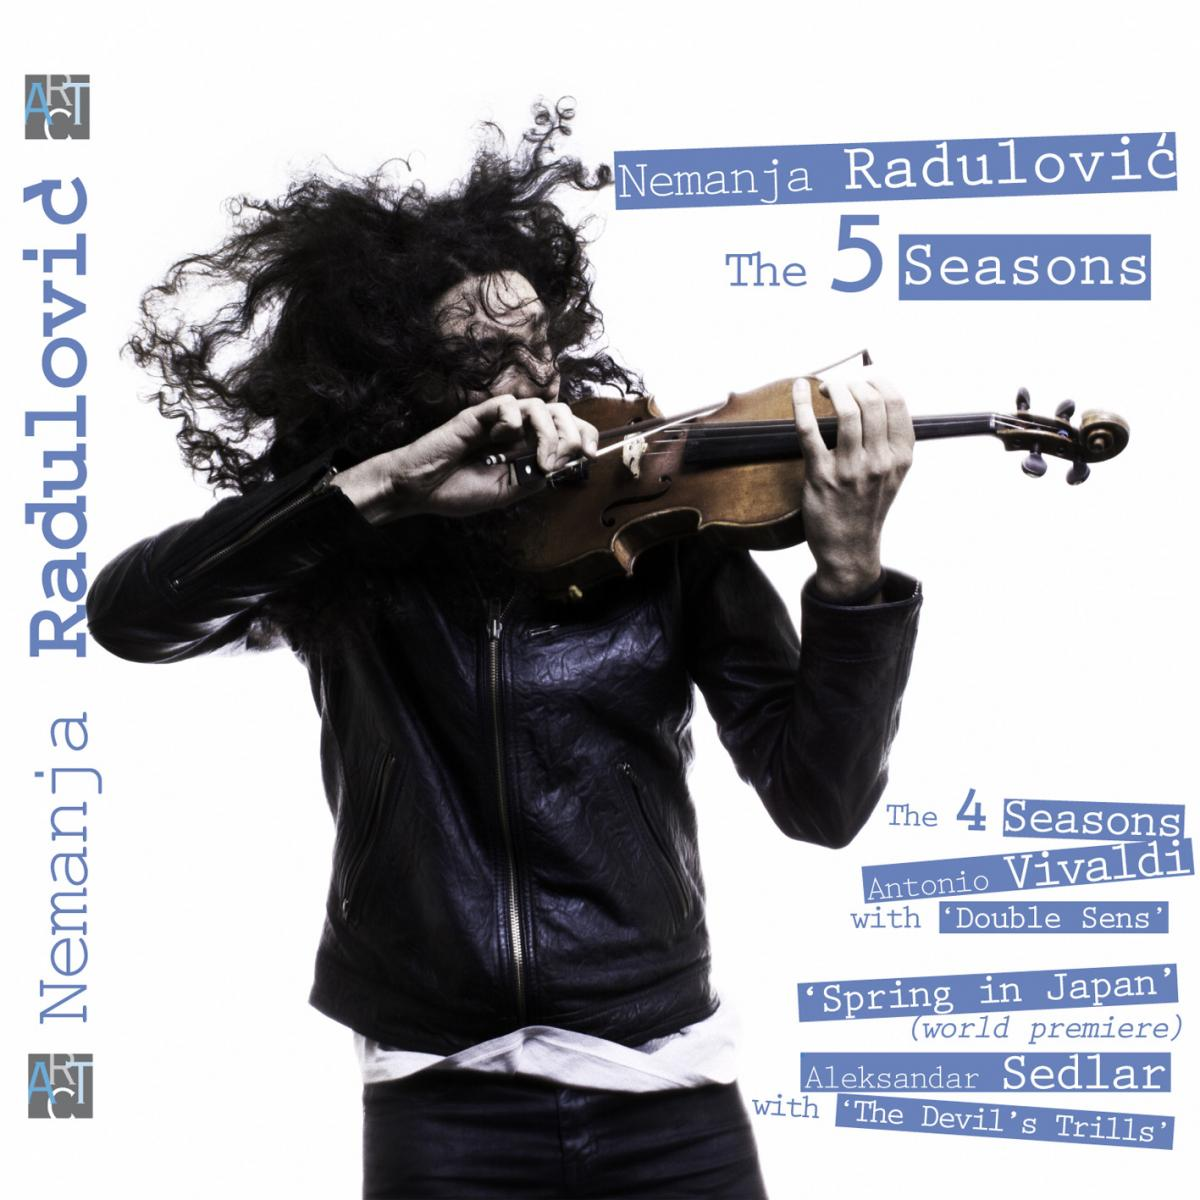 Nemanja Radulovic The 5 Seasons by ArtAct